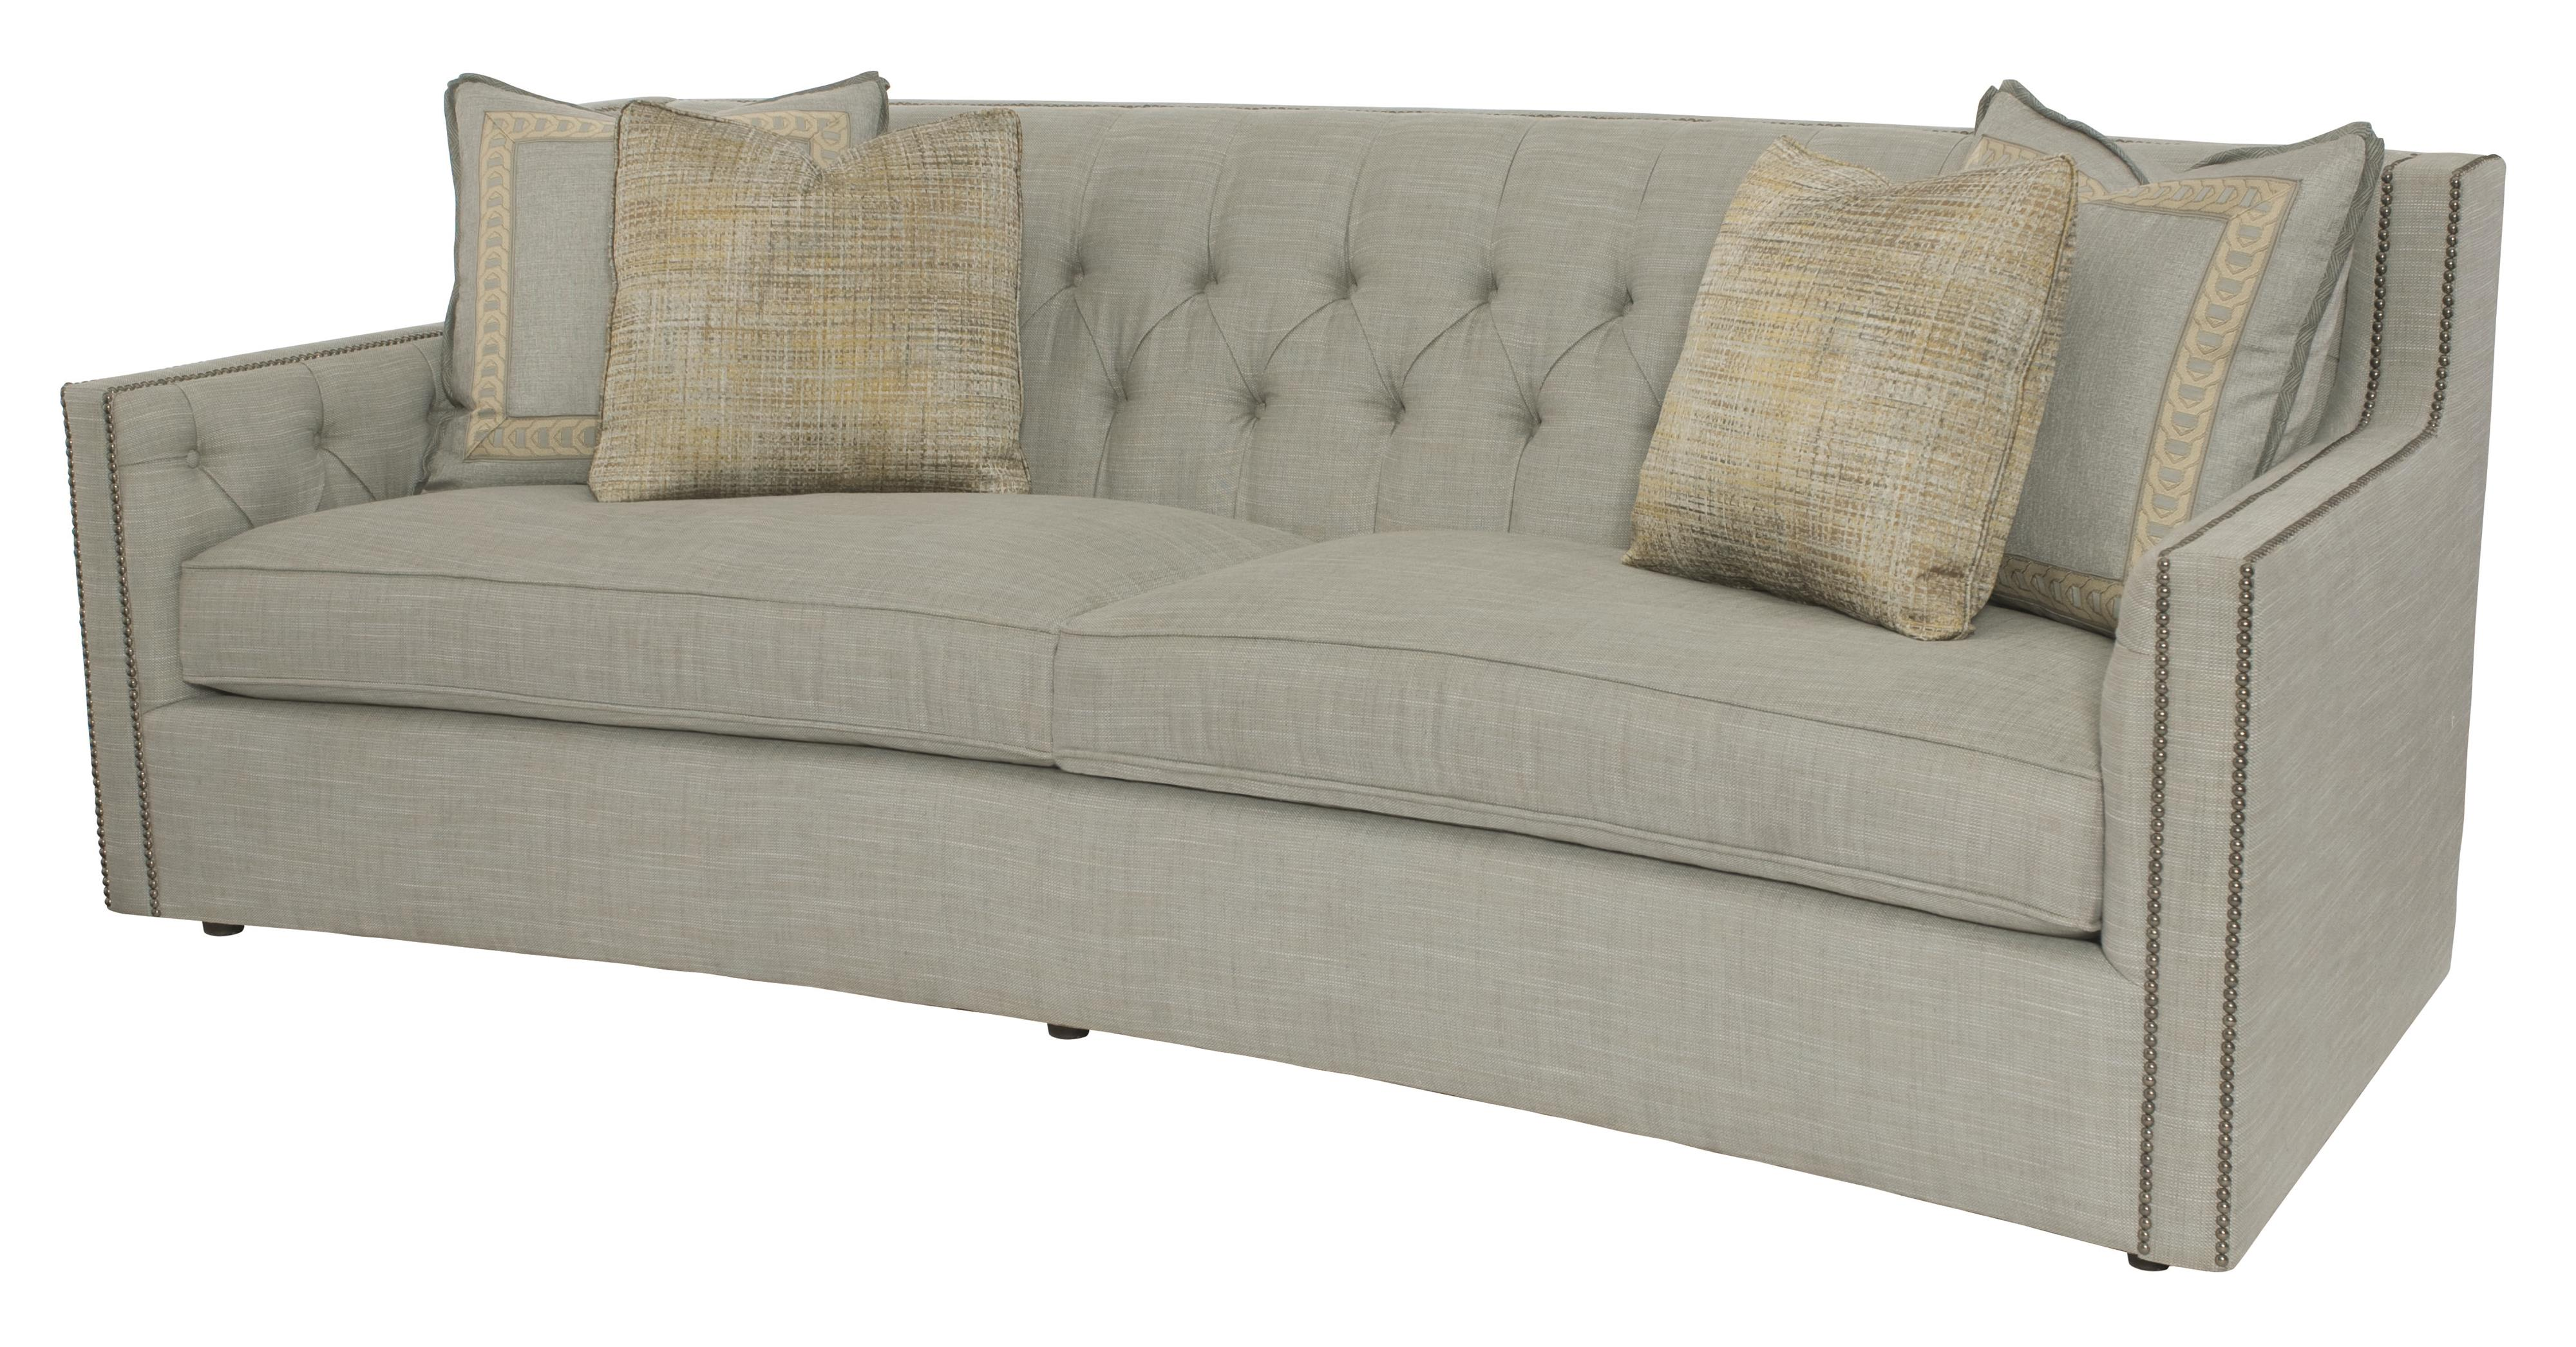 craftmaster living room furniture pottery barn rooms images bernhardt candace sofa with transitional elegance ...